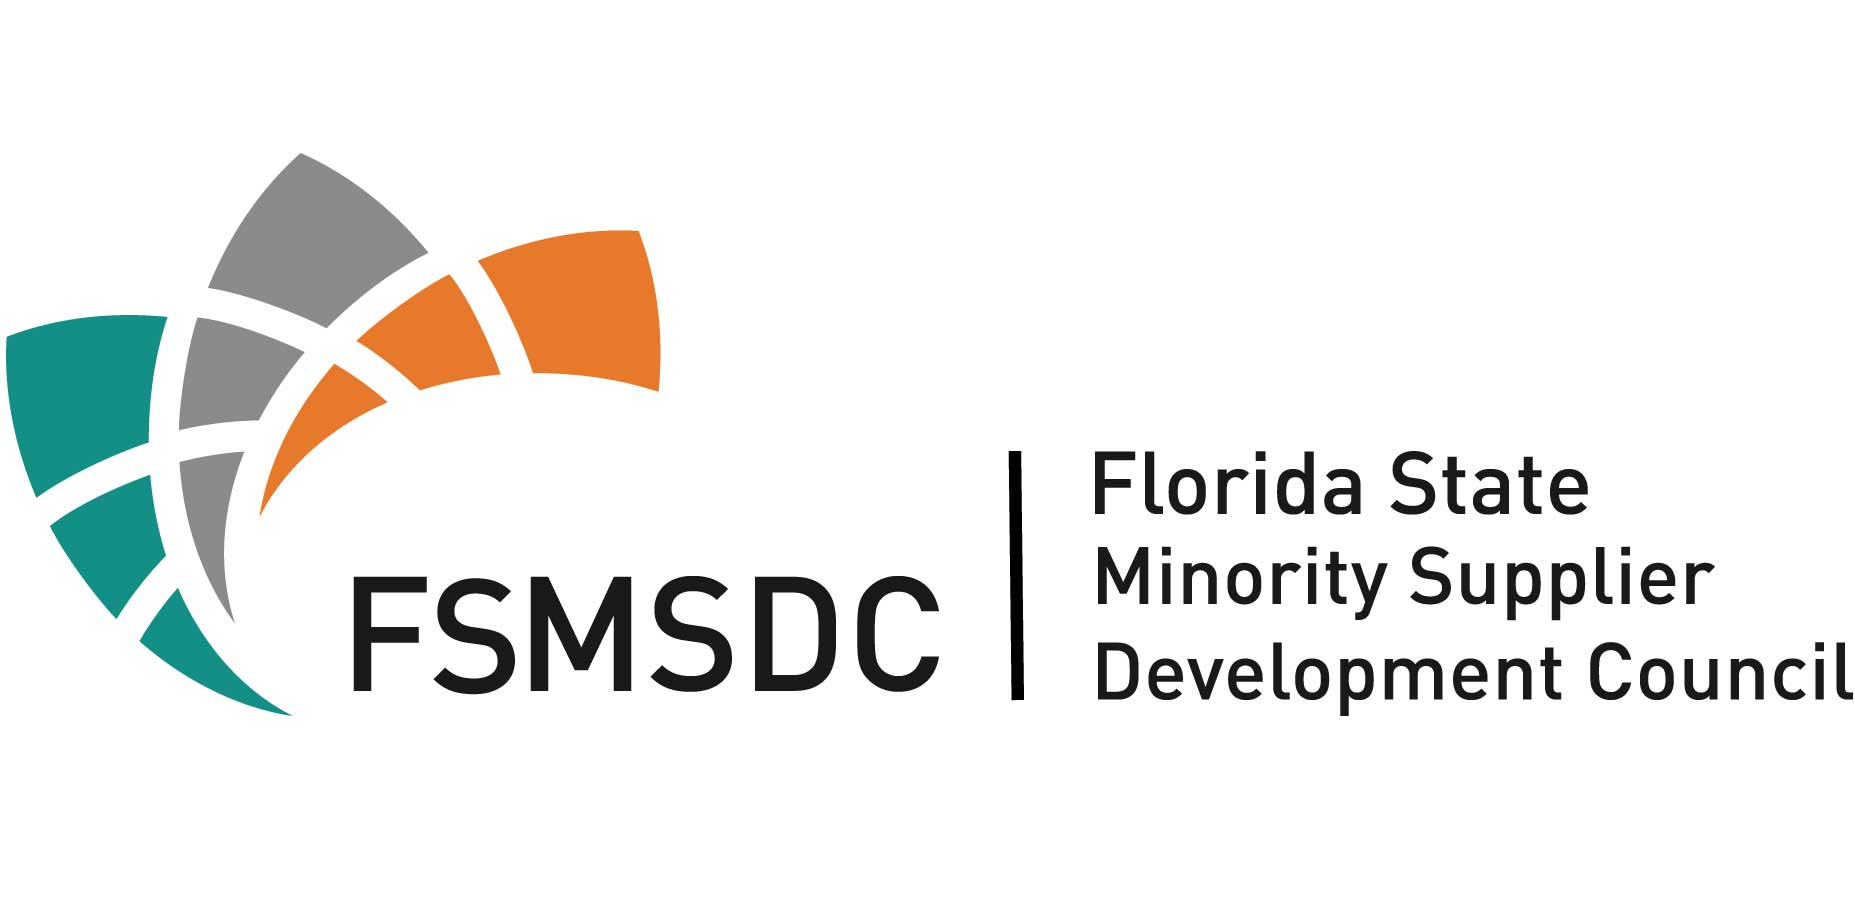 Florida State Minority Supplier Development Council